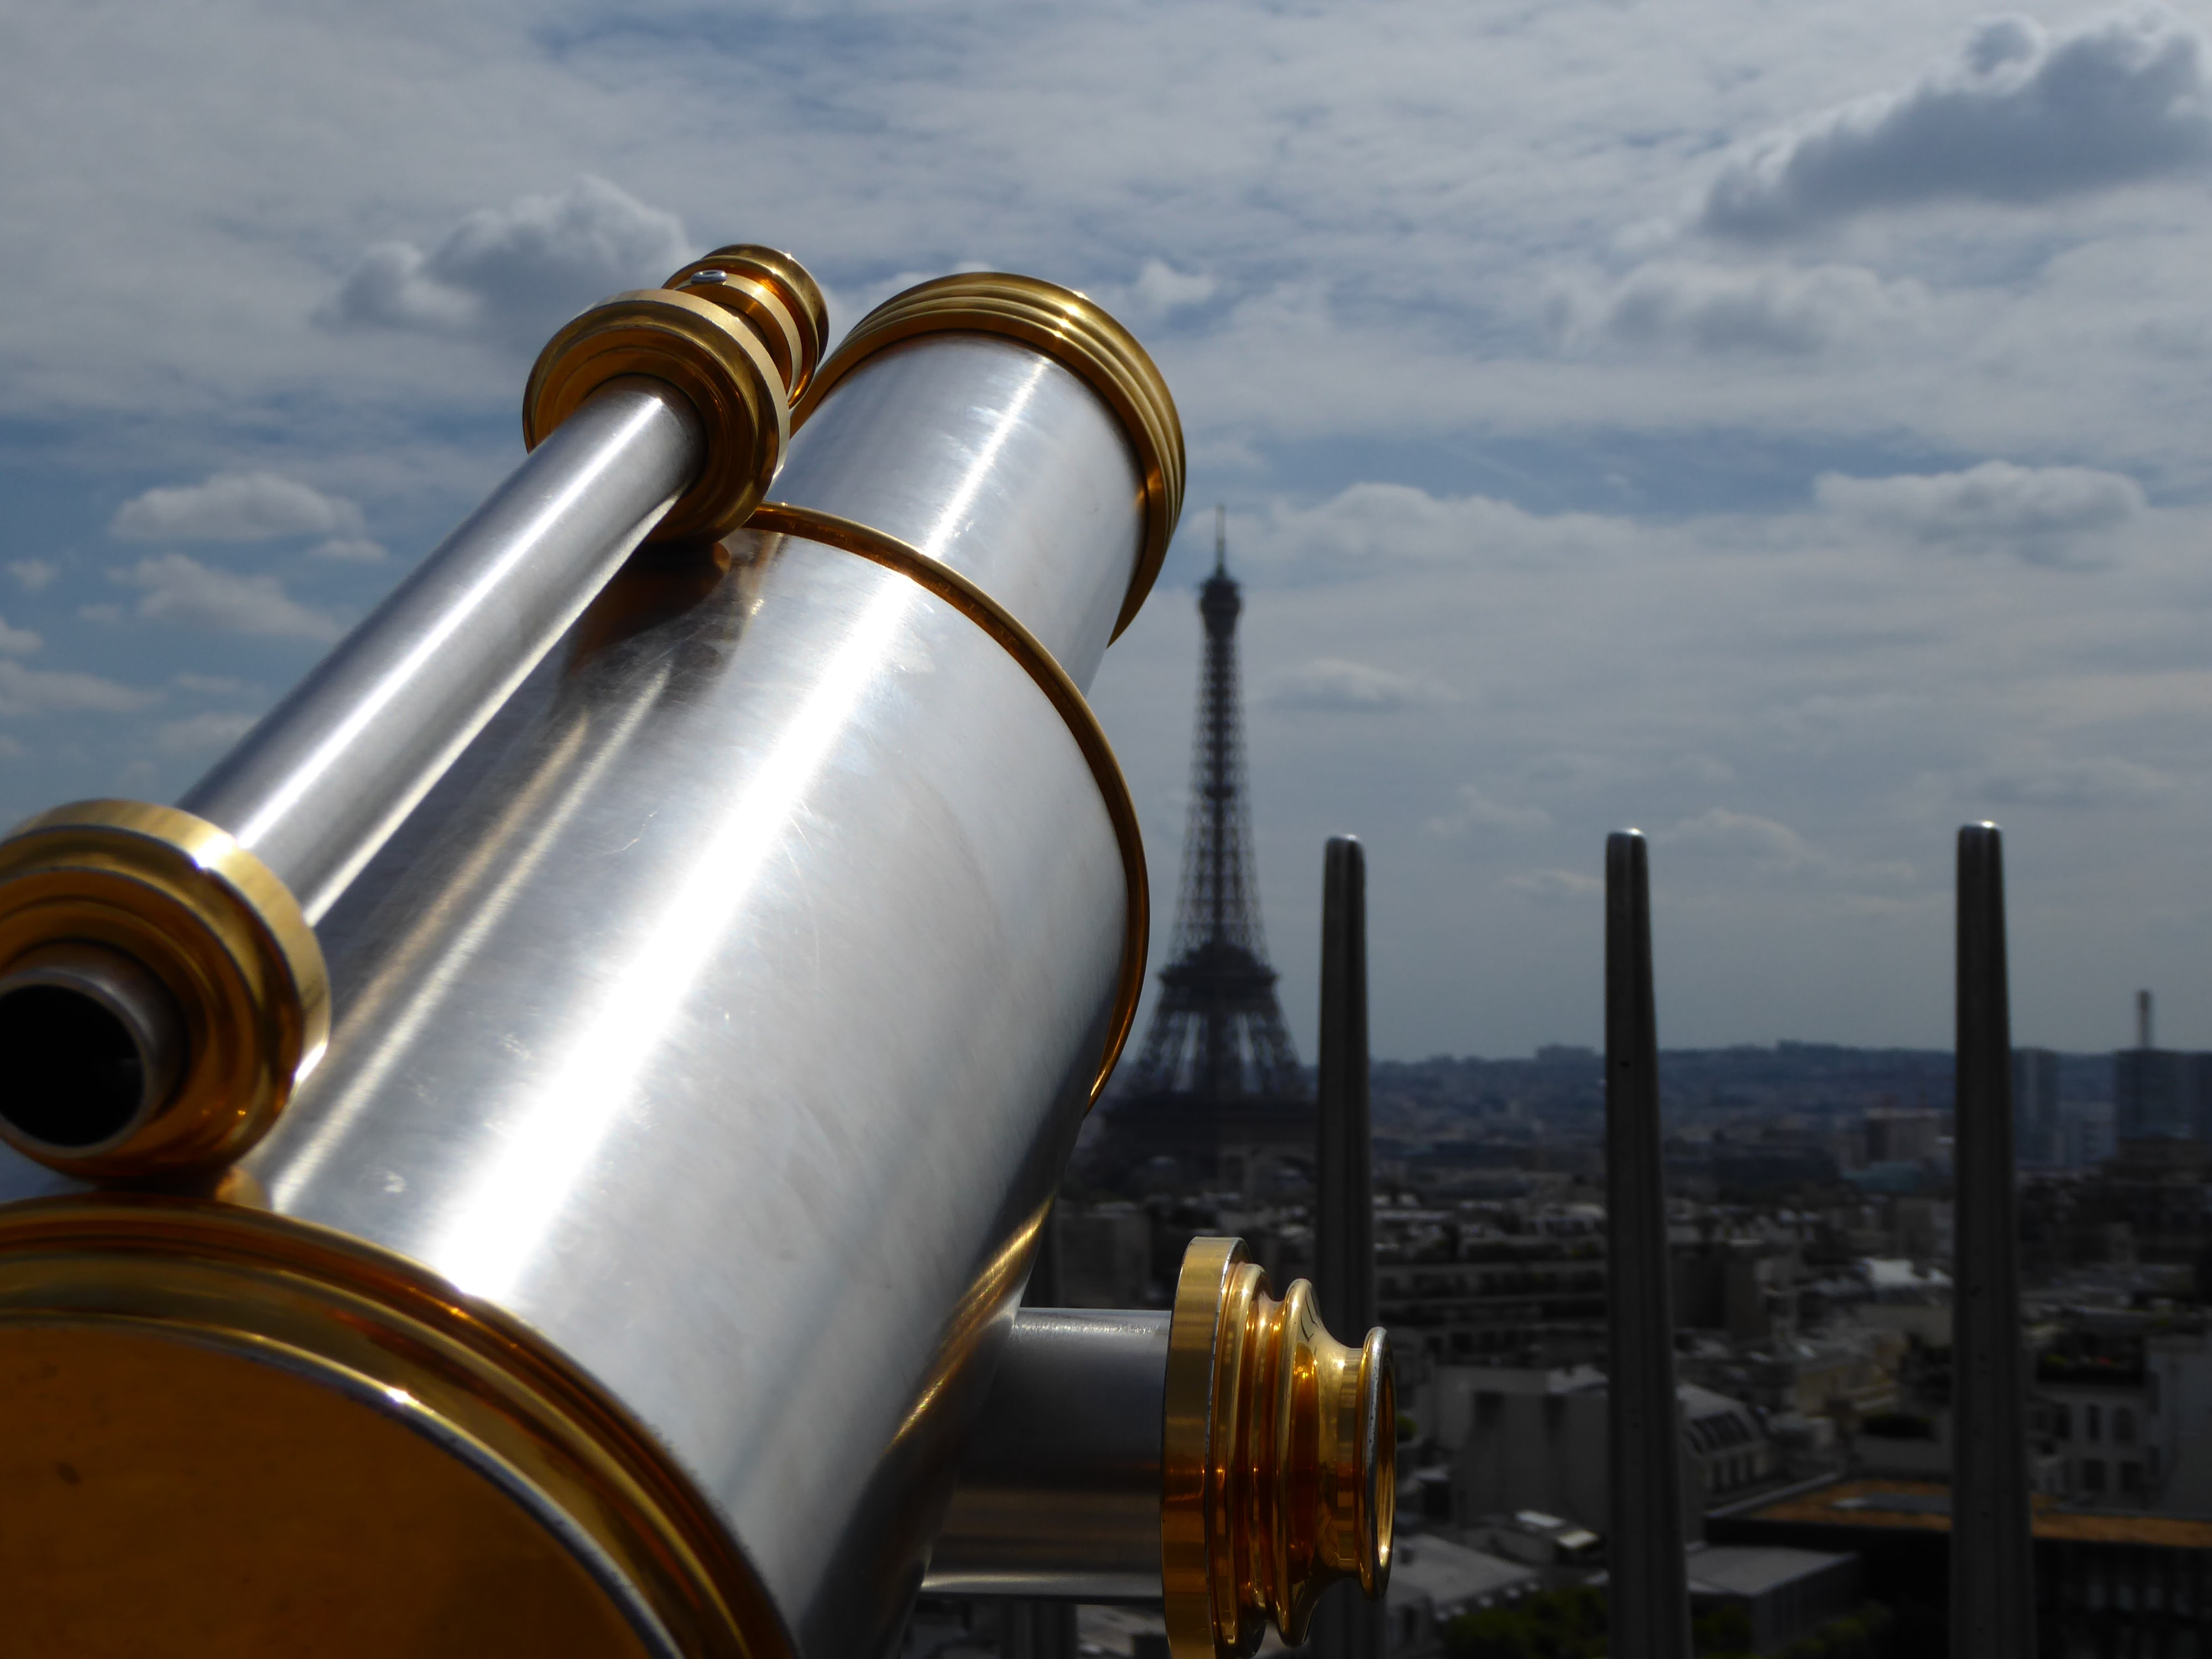 A metal viewfinder telescope with the historic Eiffel Tower and Paris cityscape in the background.